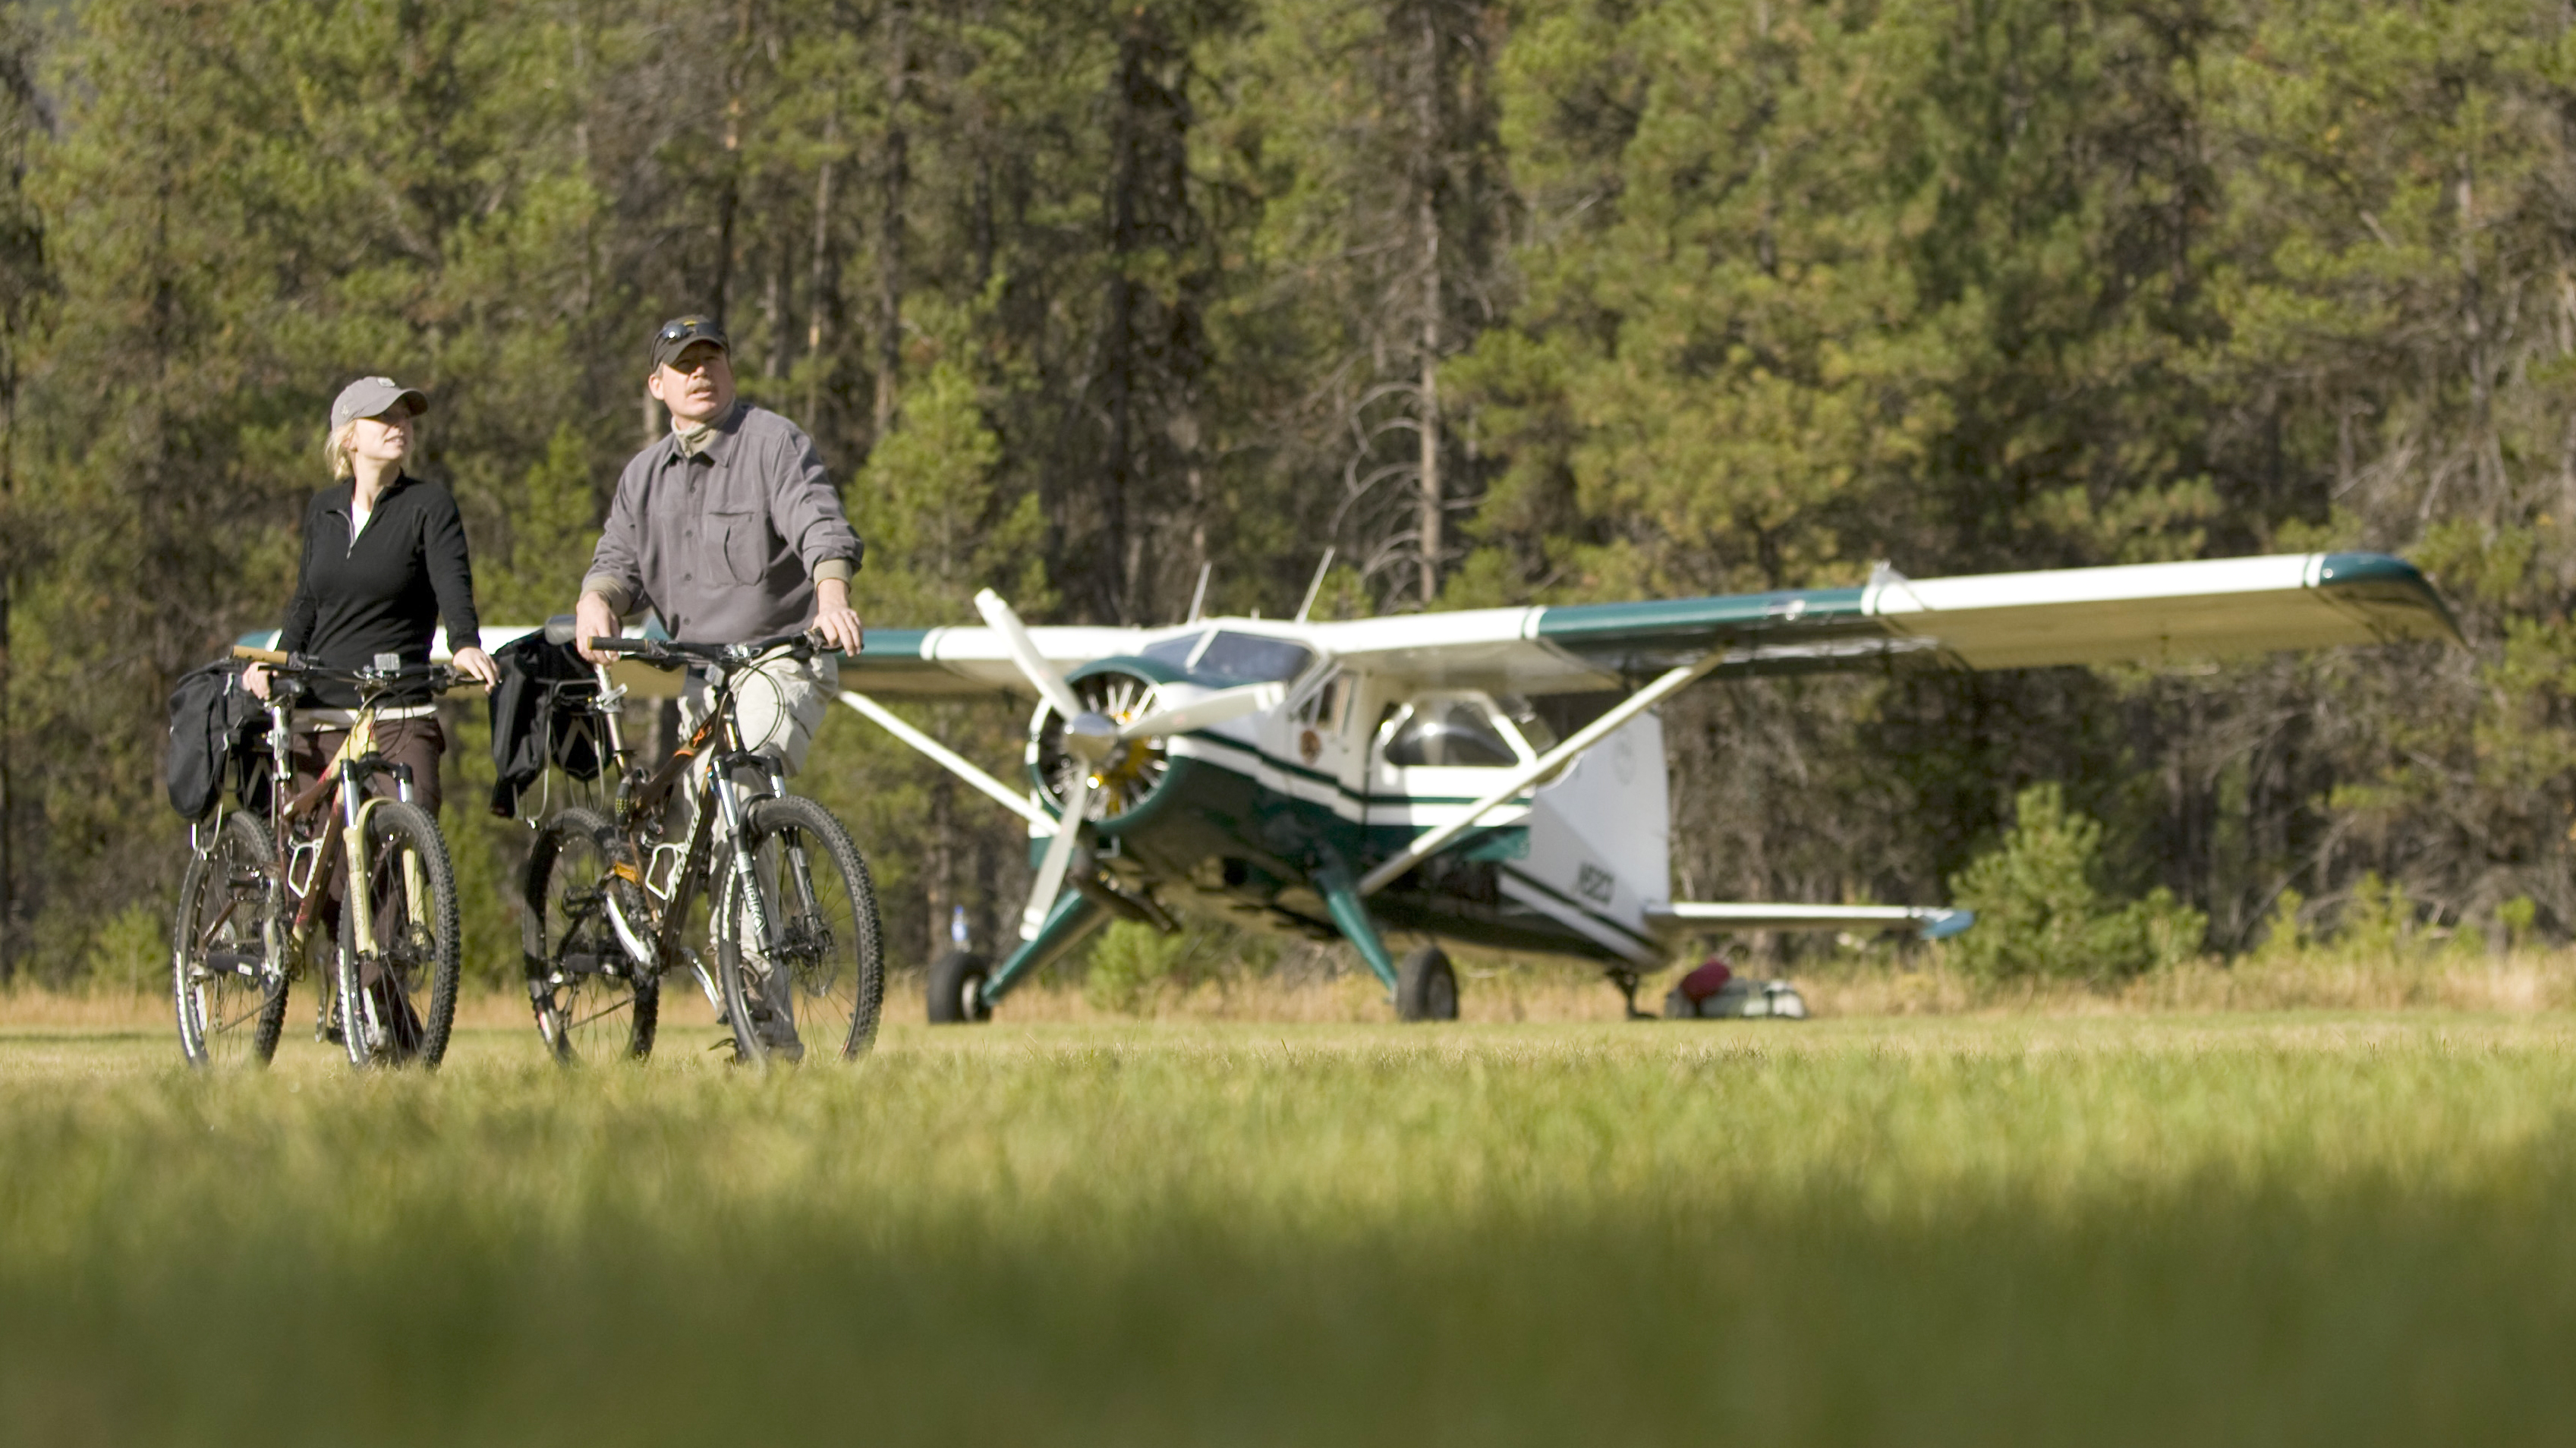 Enjoy backcountry camping after the AOPA Fly-In at Missoula, Montana. Photo by Chris Rose.